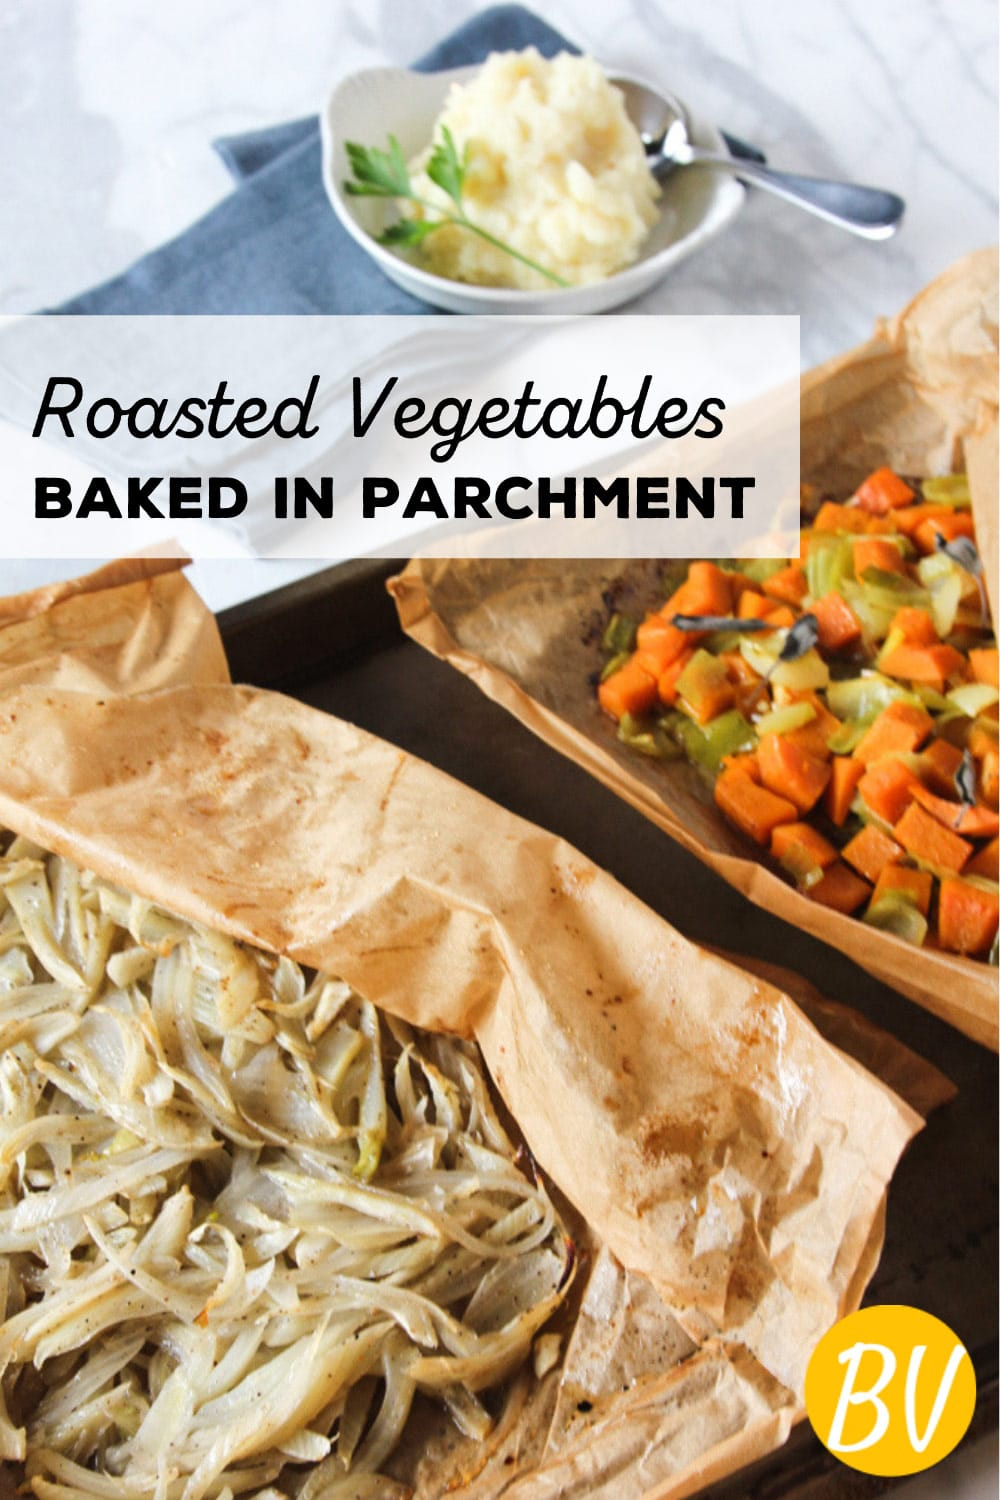 Roasting vegetables in parchment paper steams and roasts the vegetables at the same time, intensifying their inherent sweetness and flavors. #butteredveg #roasted #vegetables